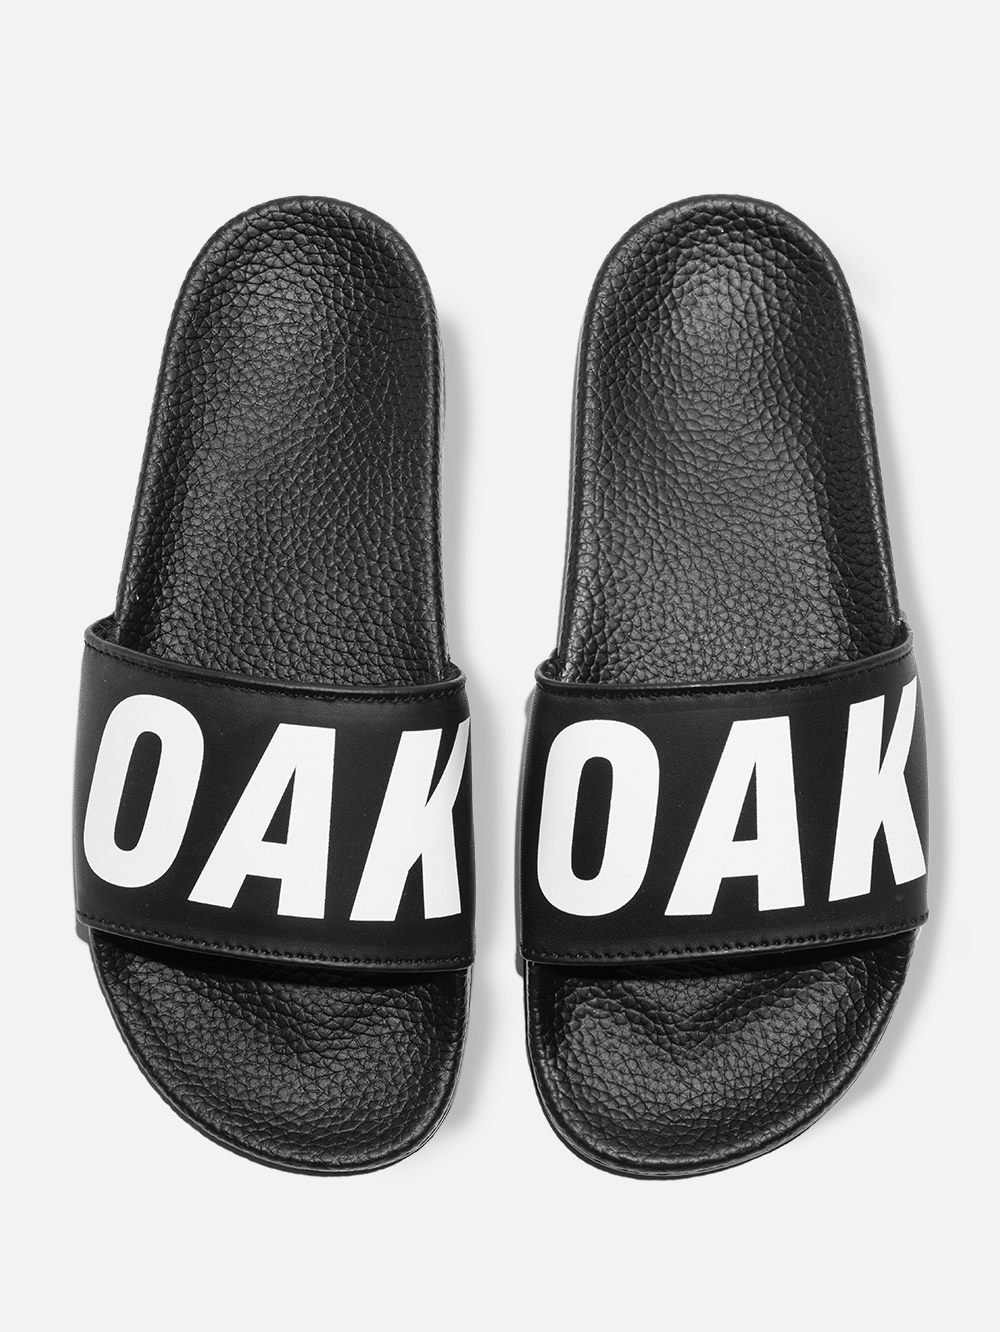 Oak Logo Slide in Black/White